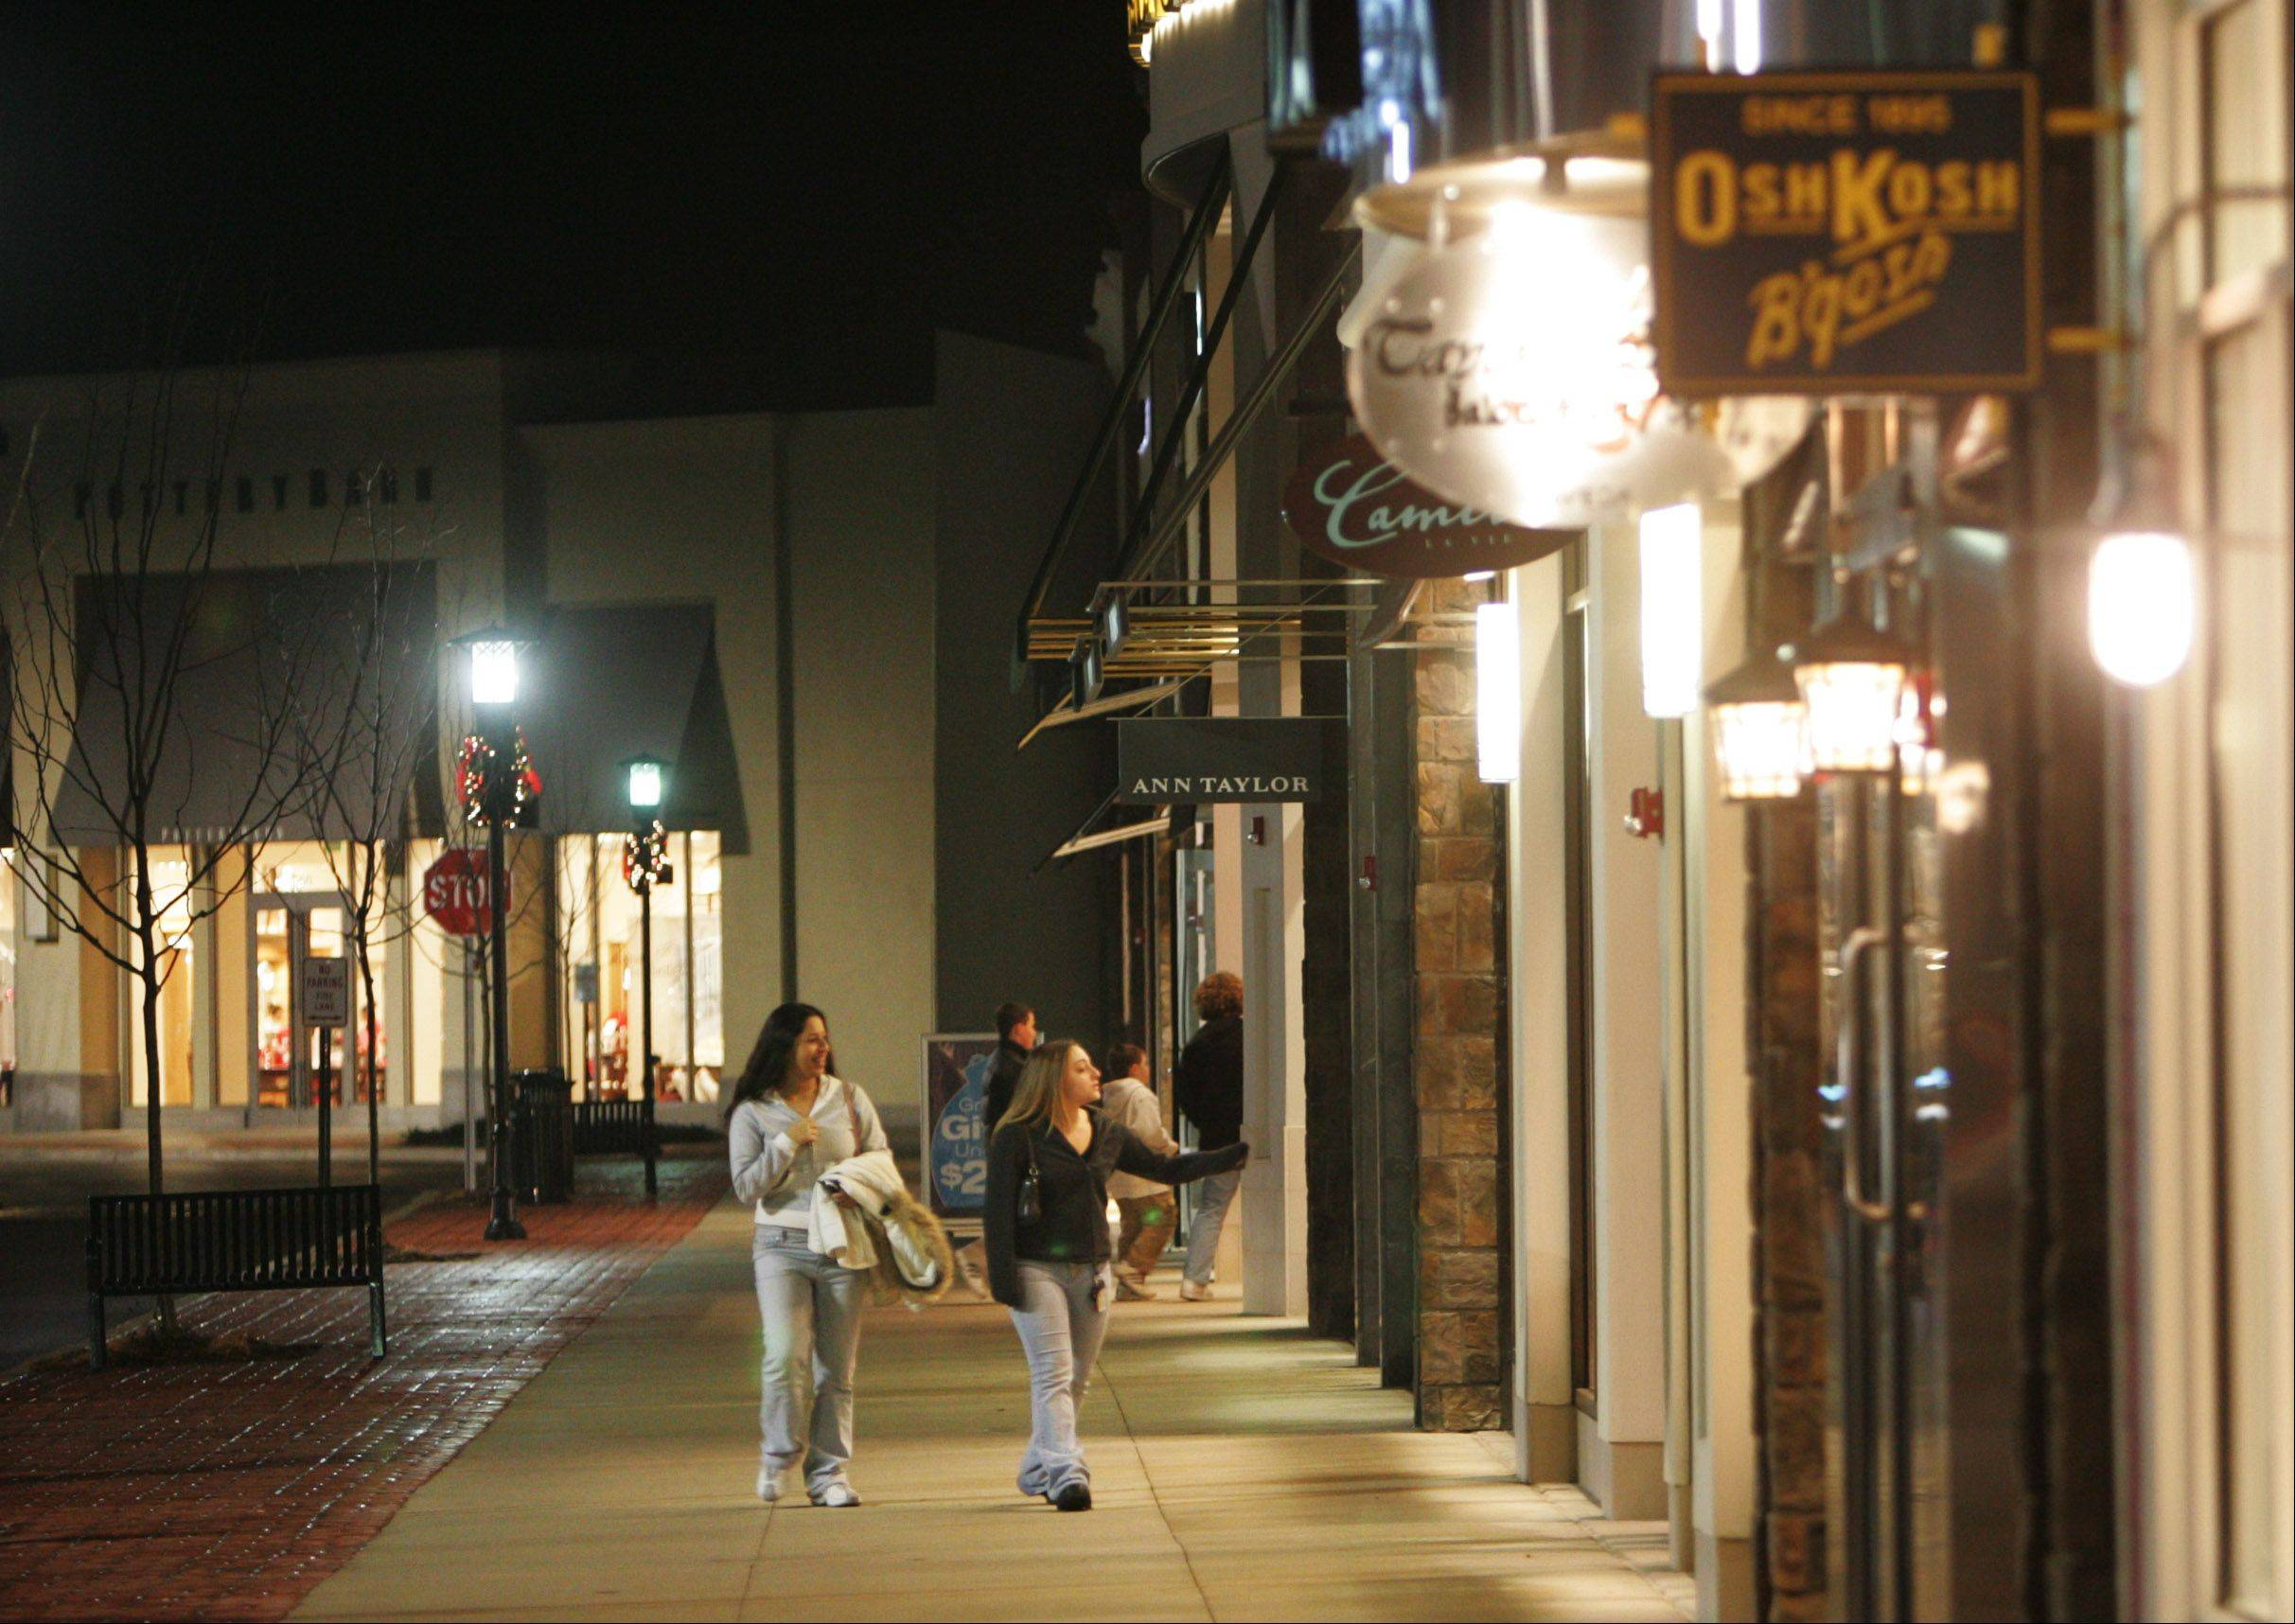 Shoppers stroll by shops at the Algonquin Commons, a shopping center in Algonquin the focus of a foreclosure lawsuit.